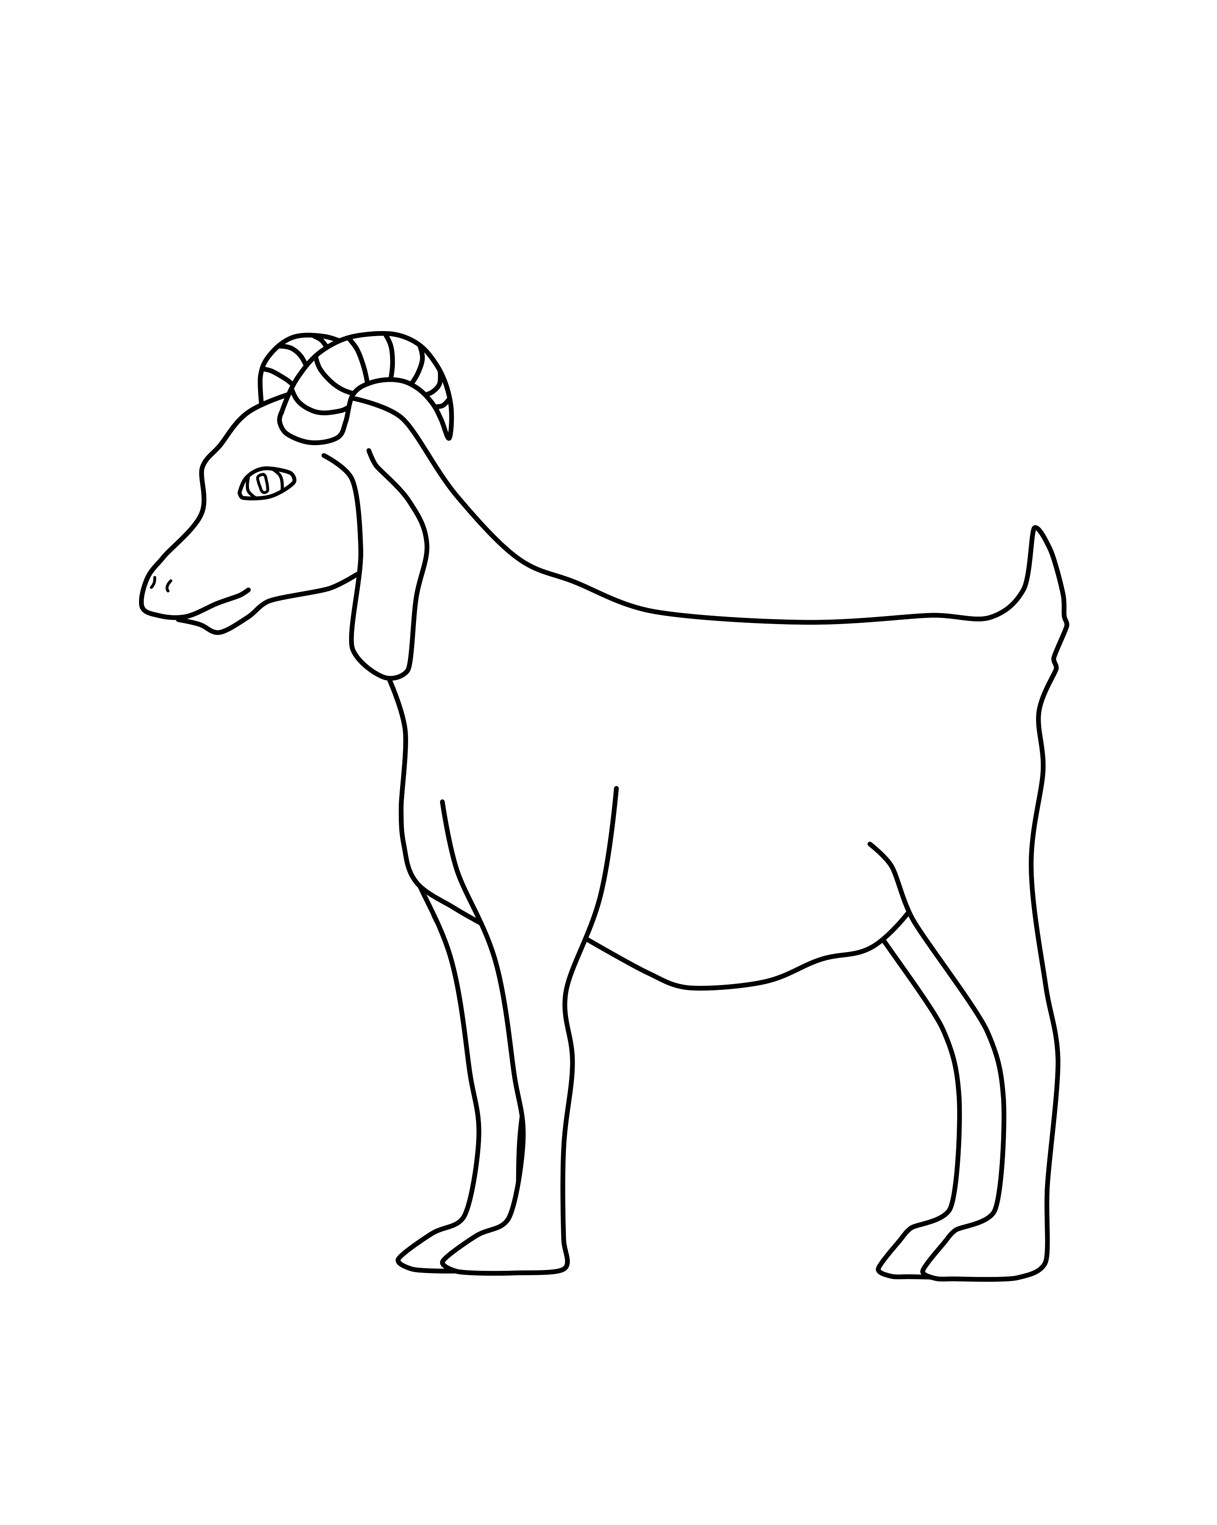 goat pictures to color cute goat coloring books for kids coloring pages for goat pictures to color